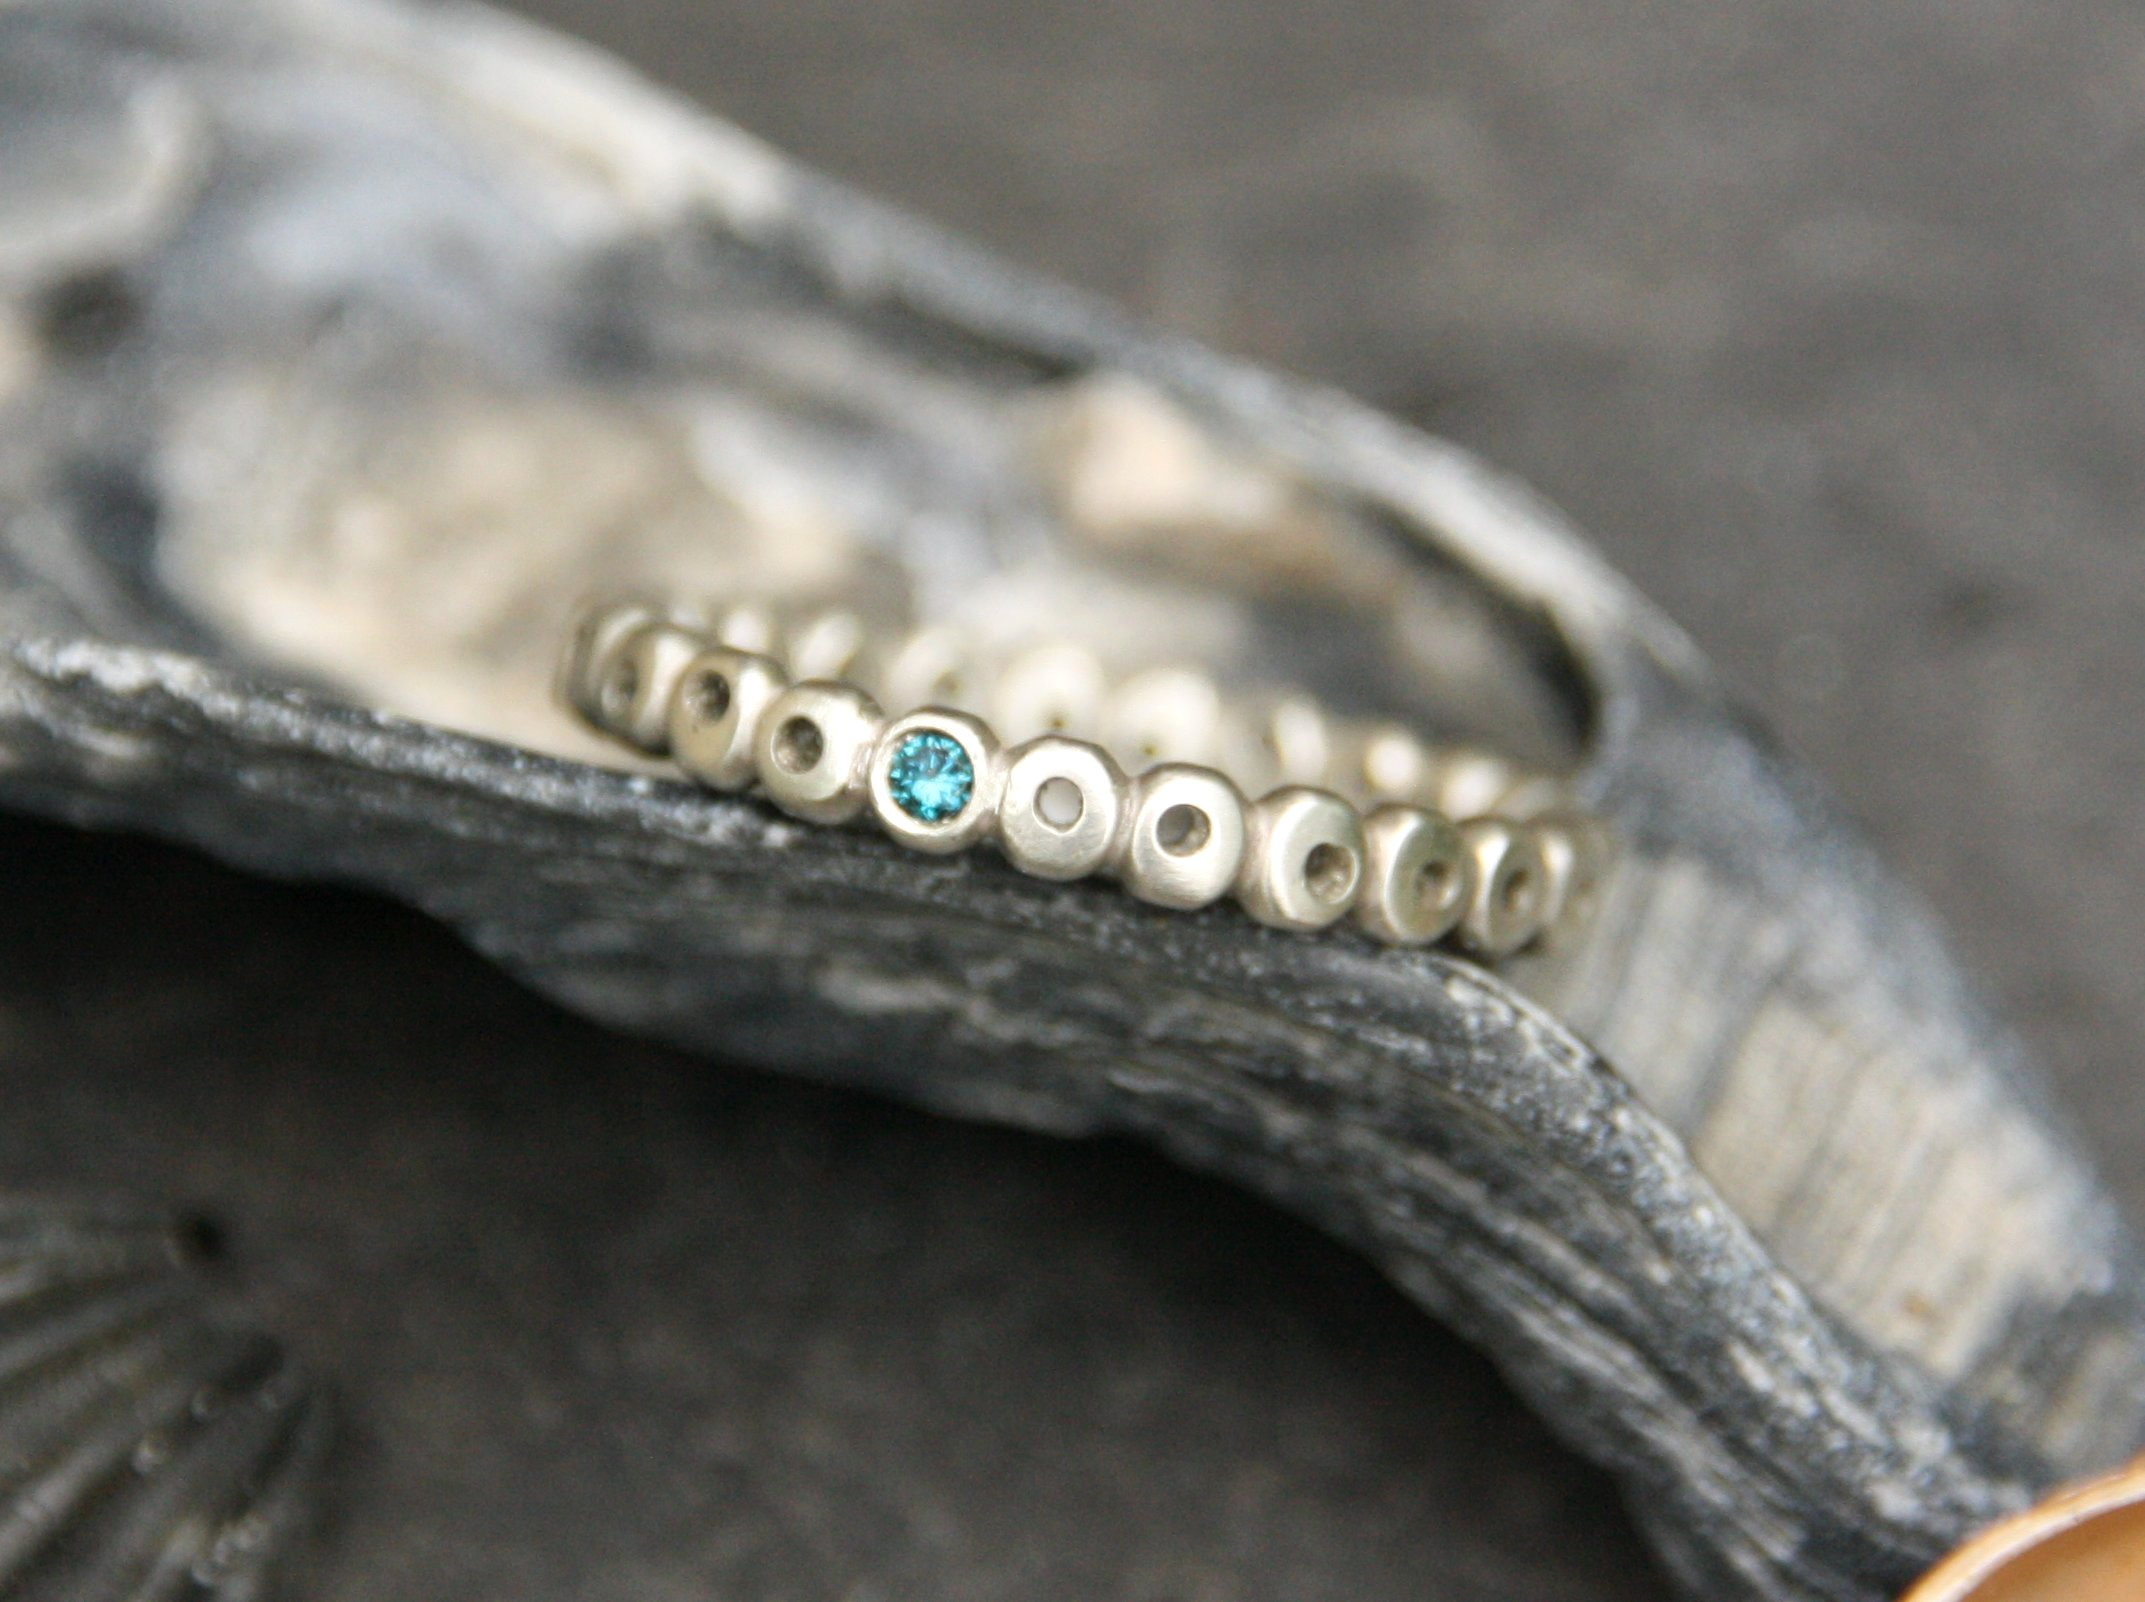 jewelry, ring, diamond, silver, diamond ring, handmade jewelry